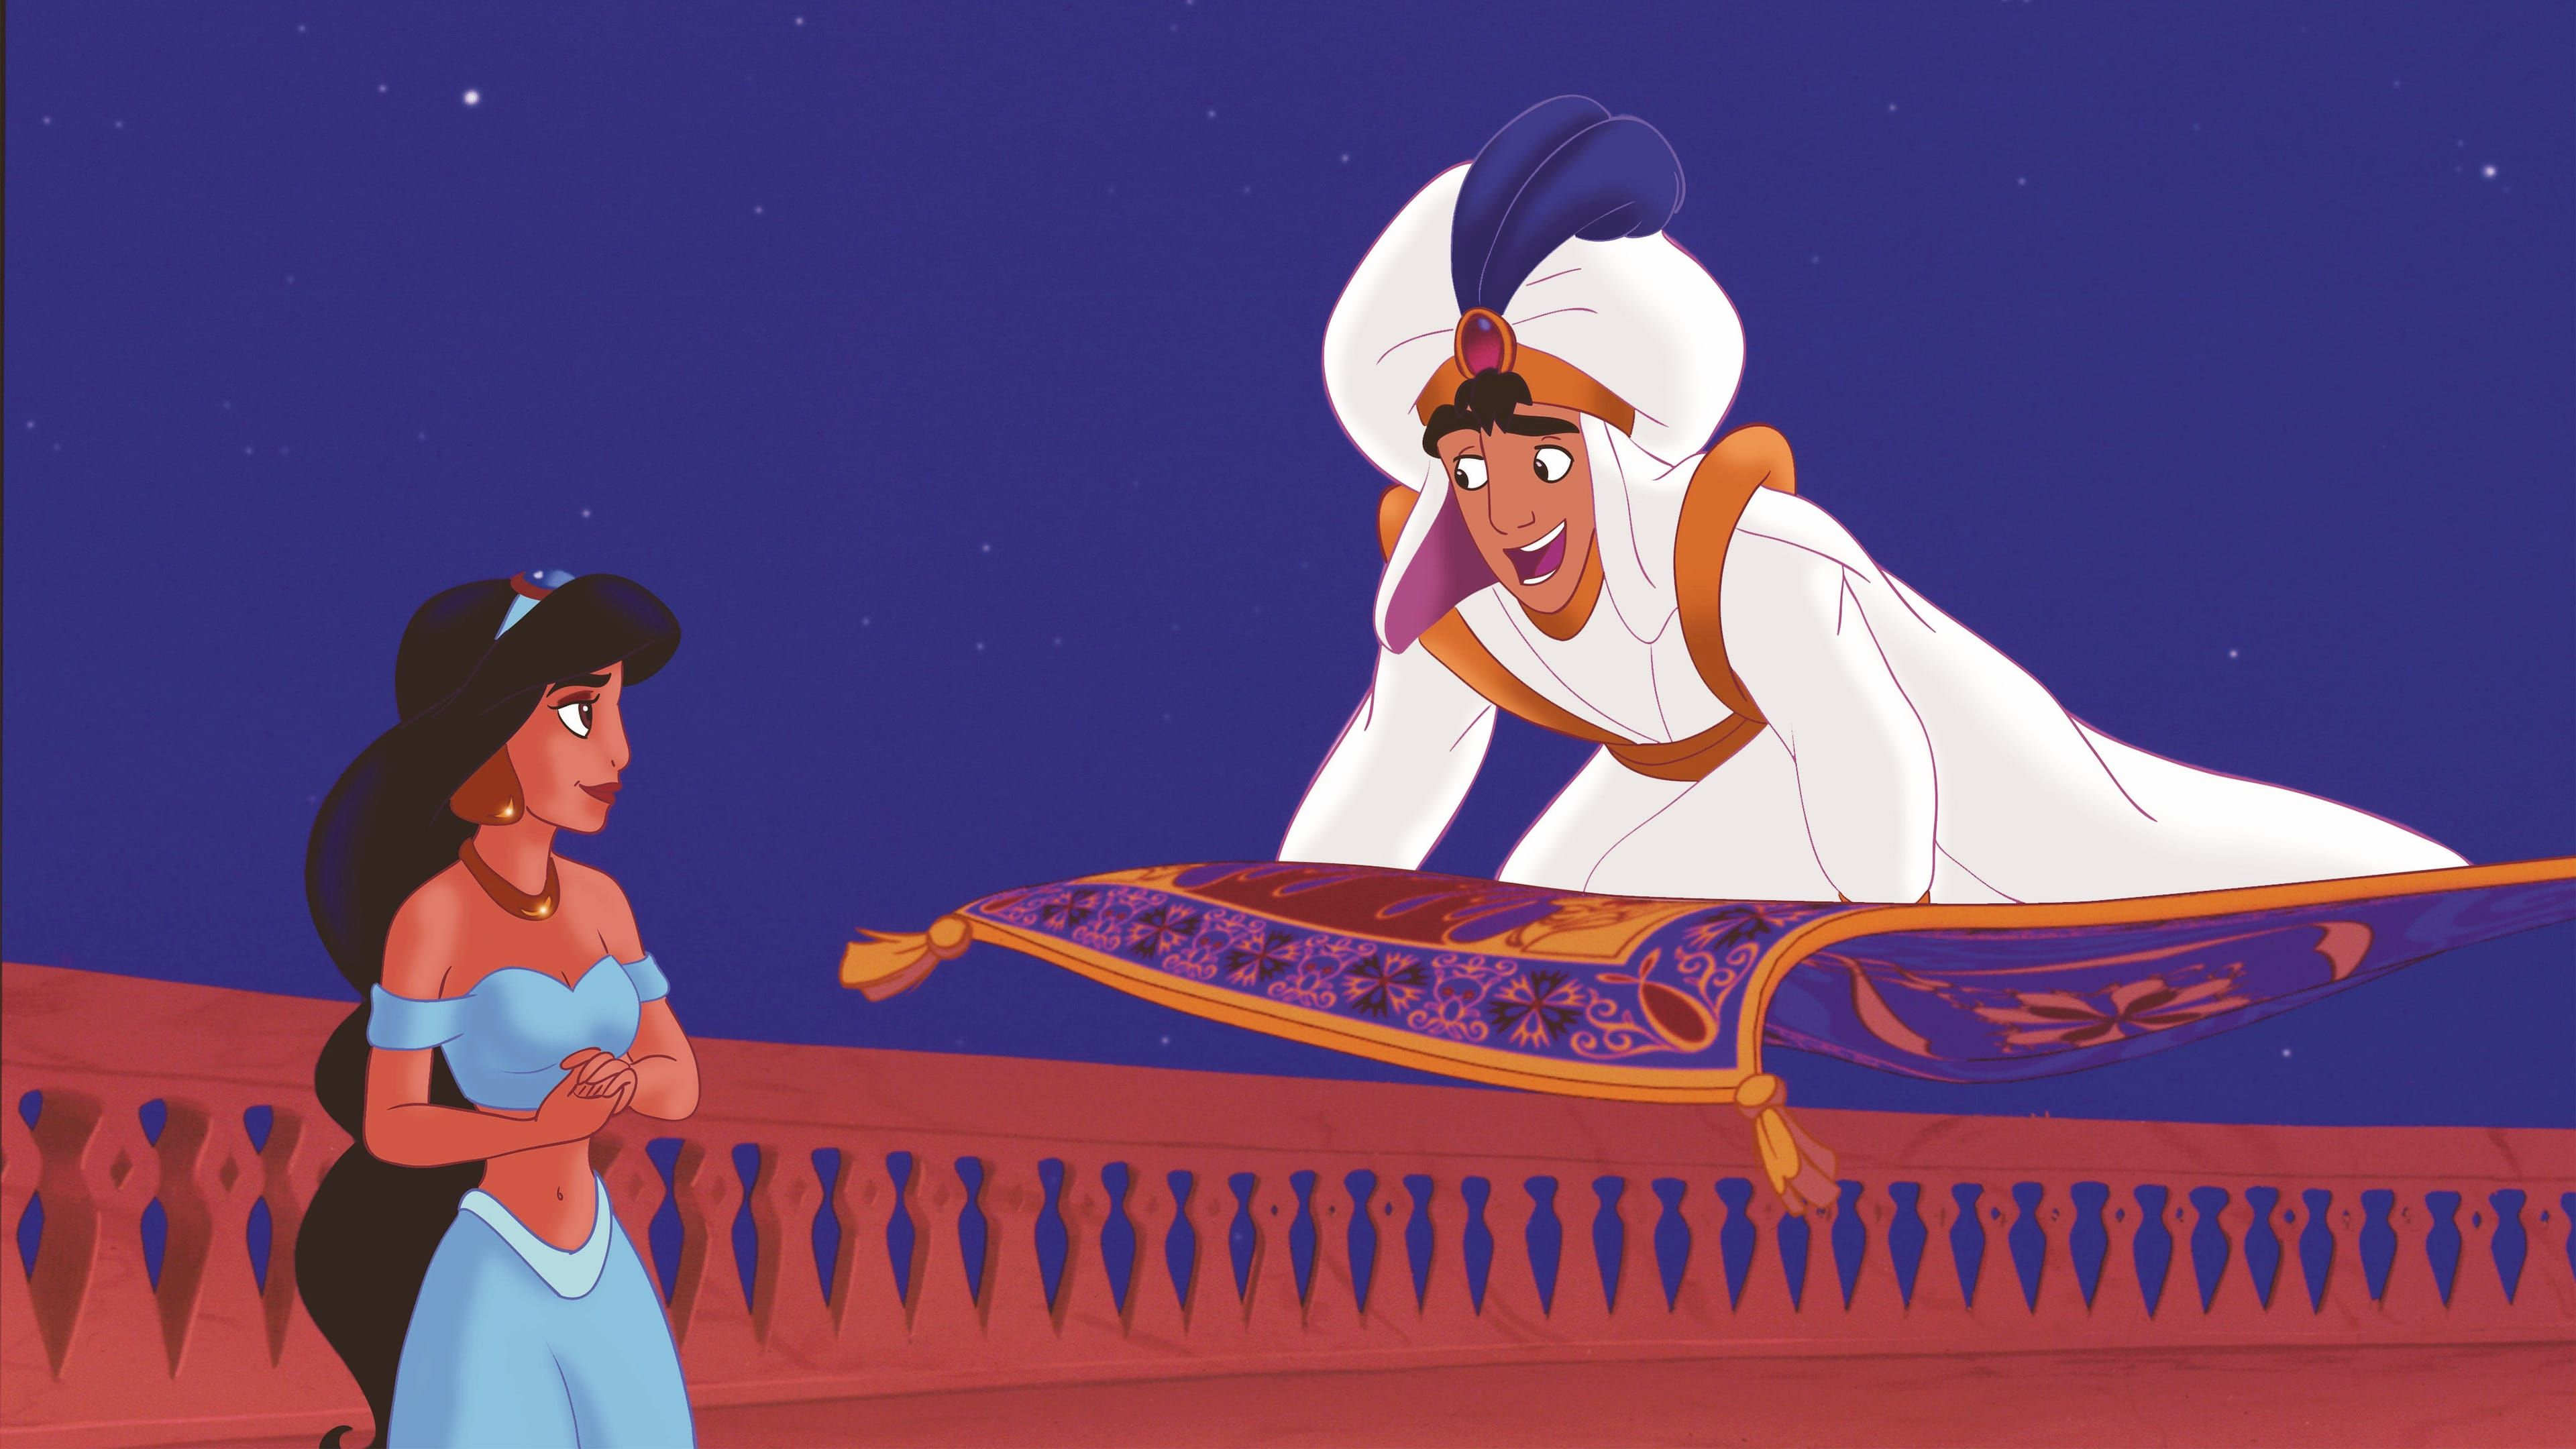 Altadefinizione Aladdin 1992 Streaming Ita Cb01 Film Completo Cinema Guarda Aladdin Italiano 199 Aladdin Movie Classic Disney Movies Walt Disney Pictures